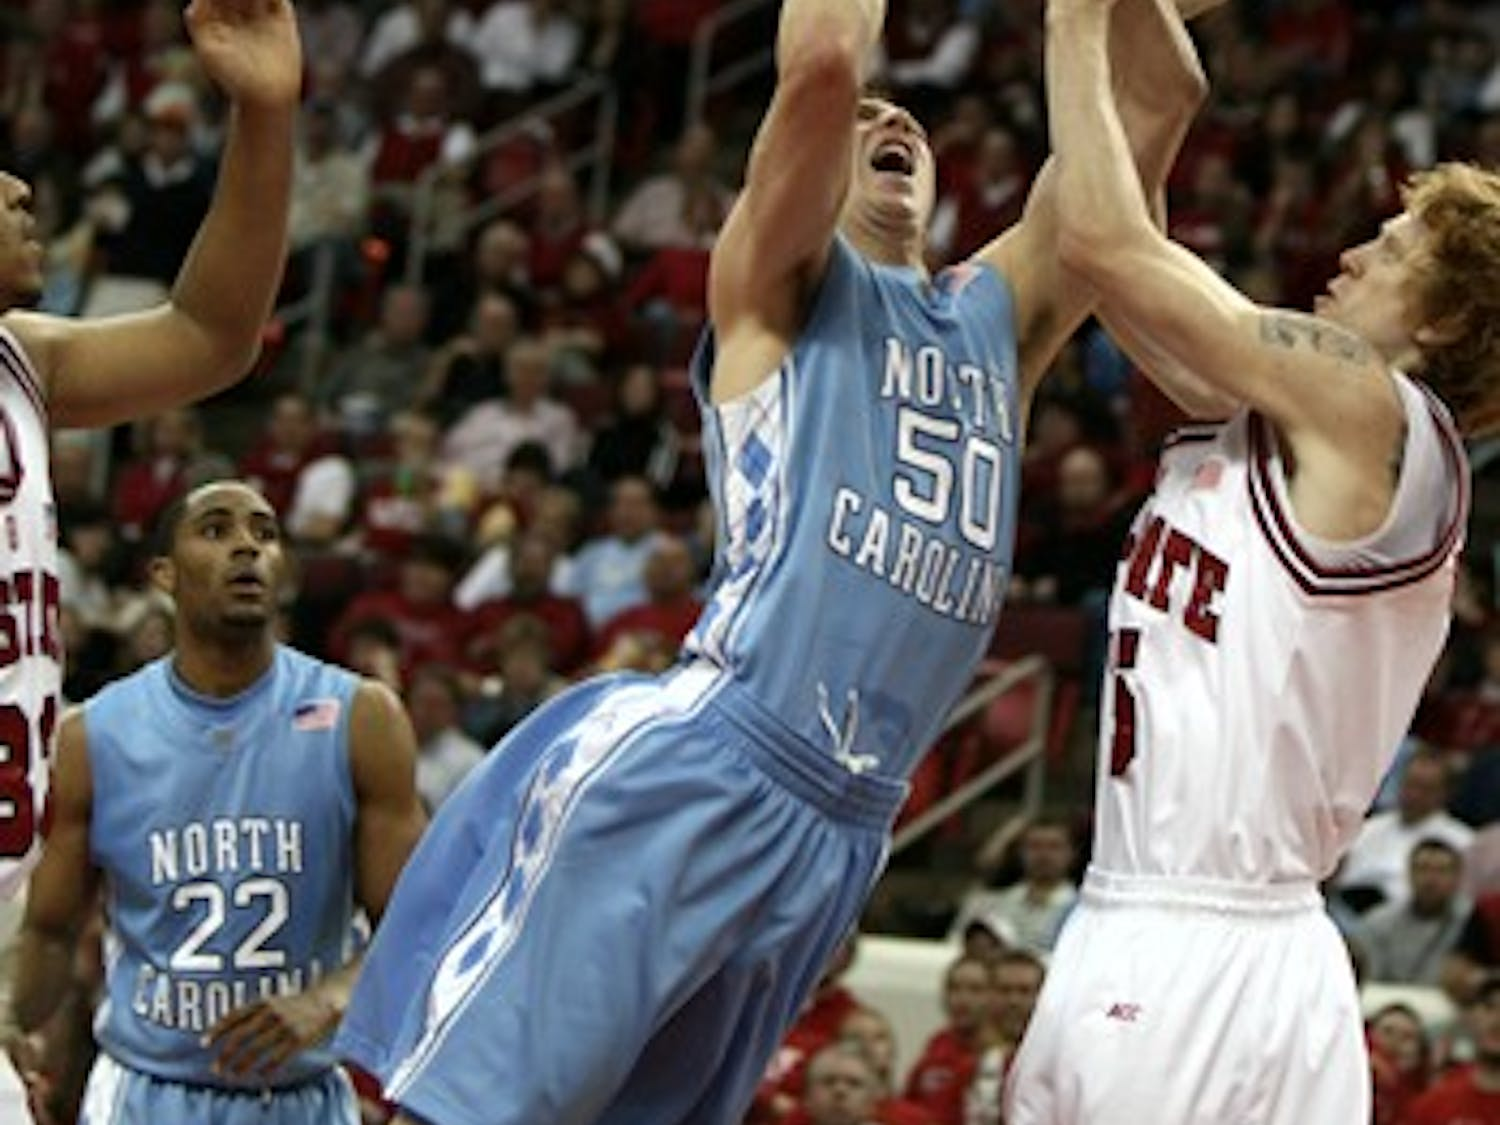 North Carolina's Tyler Hansbrough played 37 minutes in the Tar Heels' 84-70 victory against N.C. State on Wednesday night at the RBC Center.